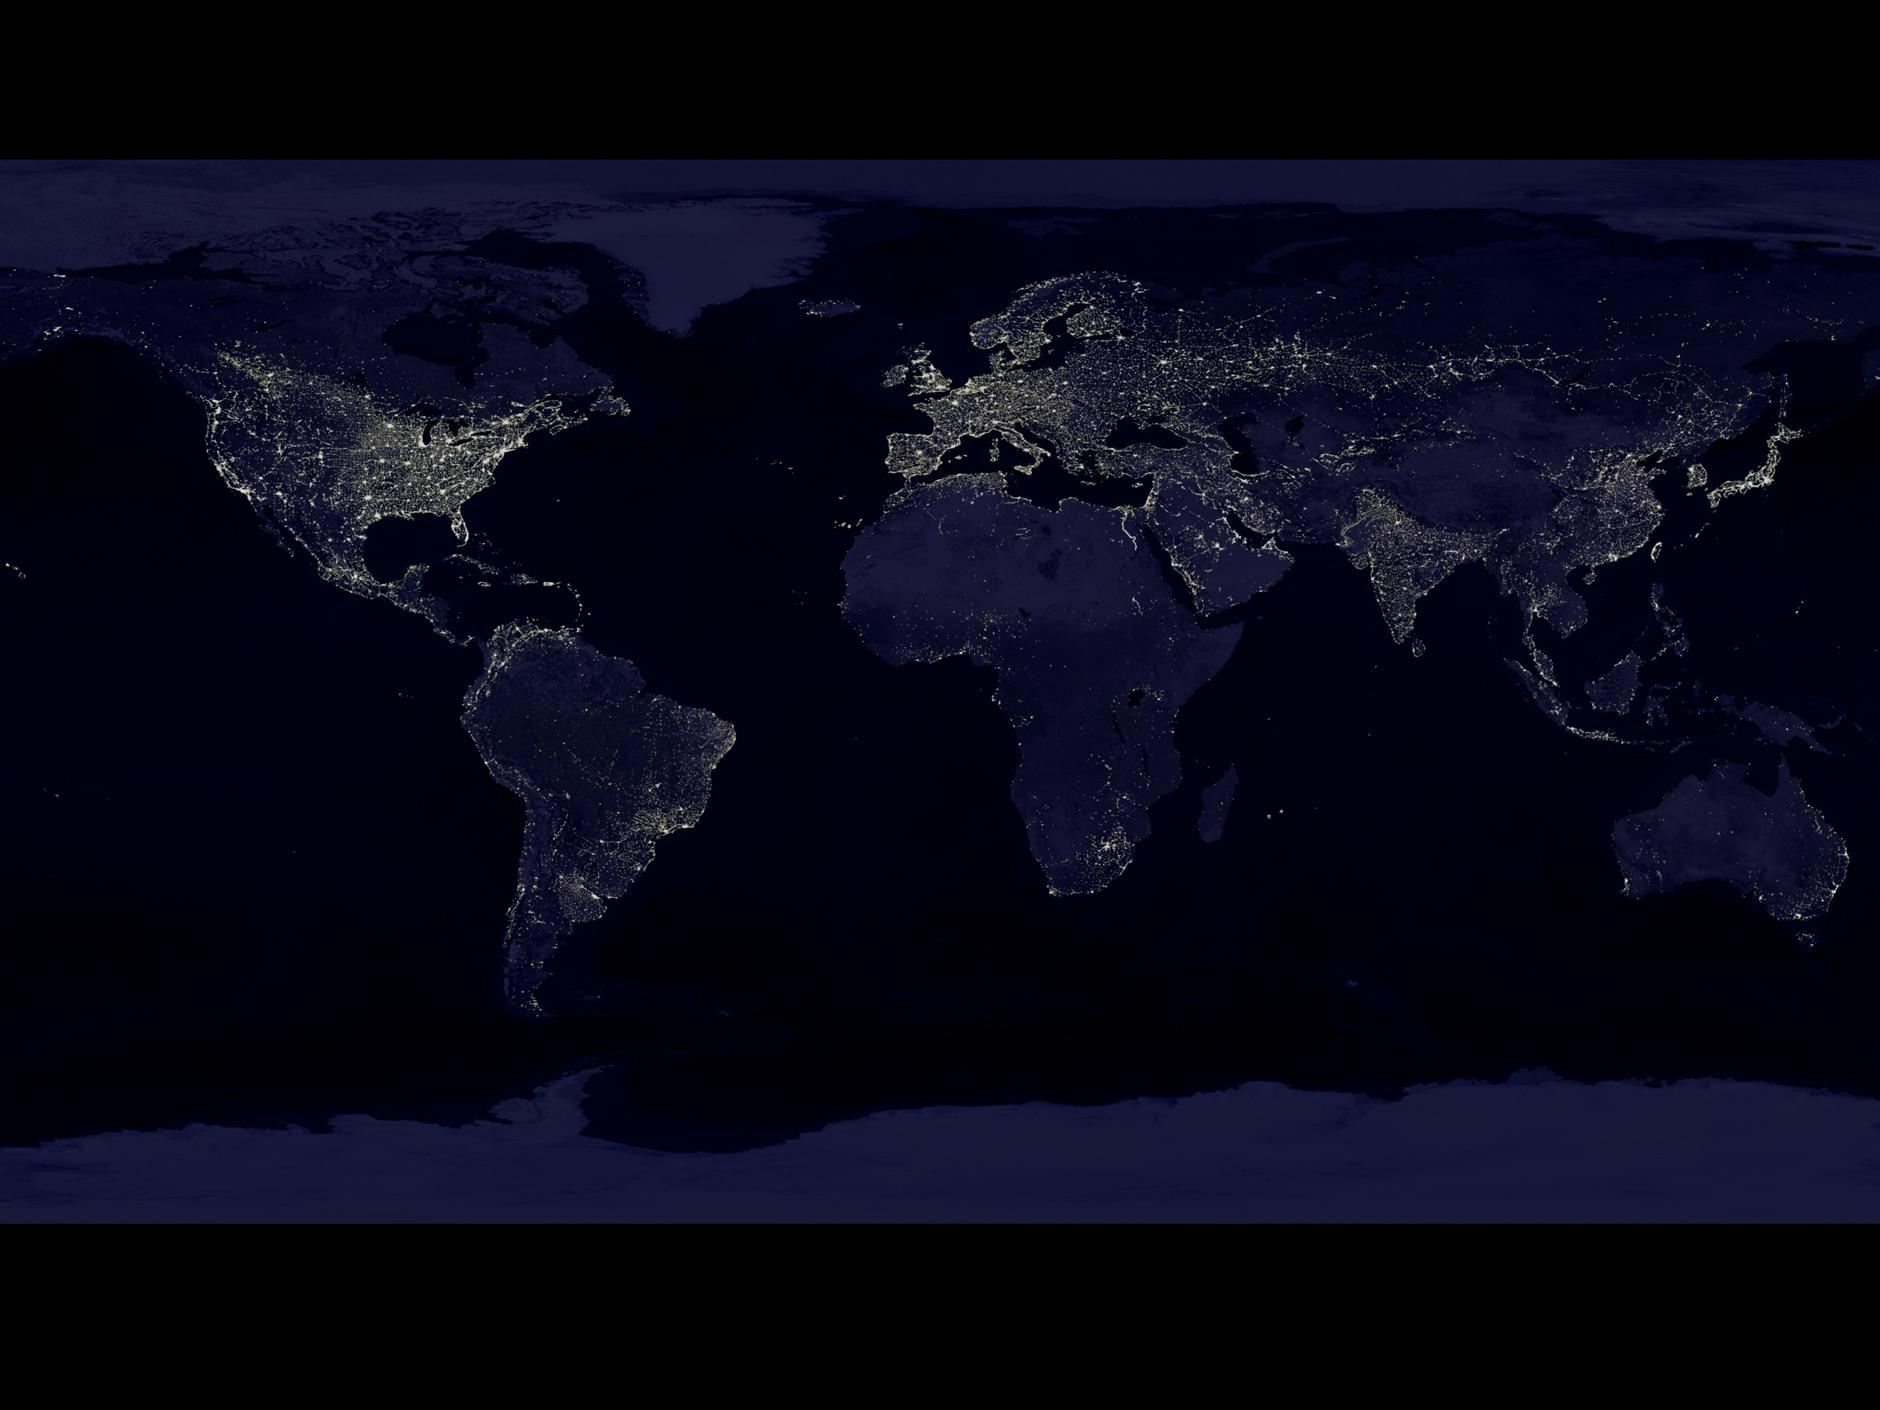 Global image of city lights.